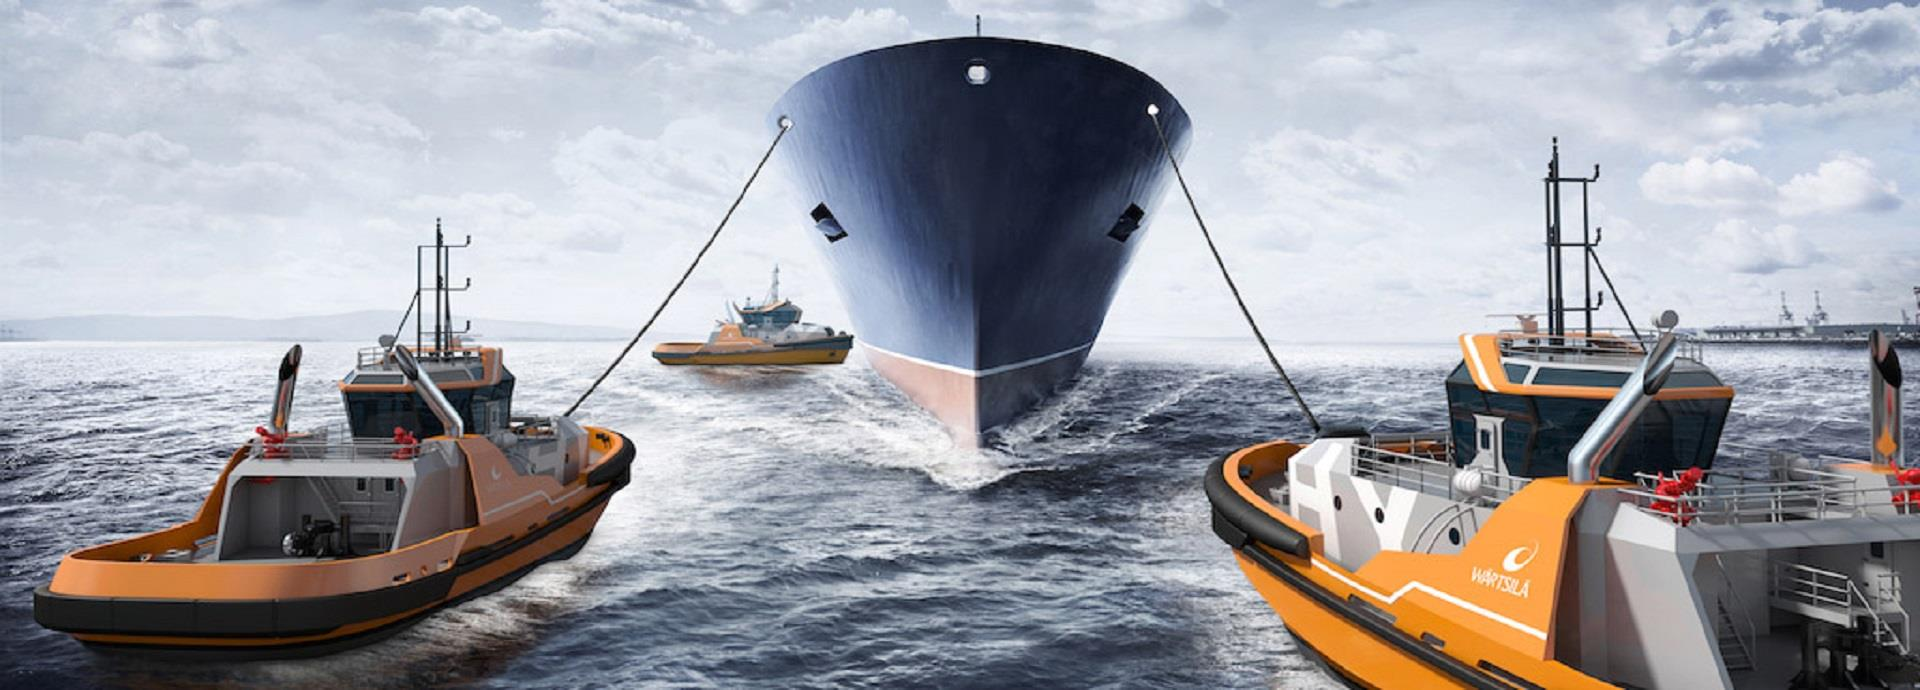 the-wartsila-hy-tug-system-electric-hybrid-designs-to-save-costs-and-reduce-emissions_resized